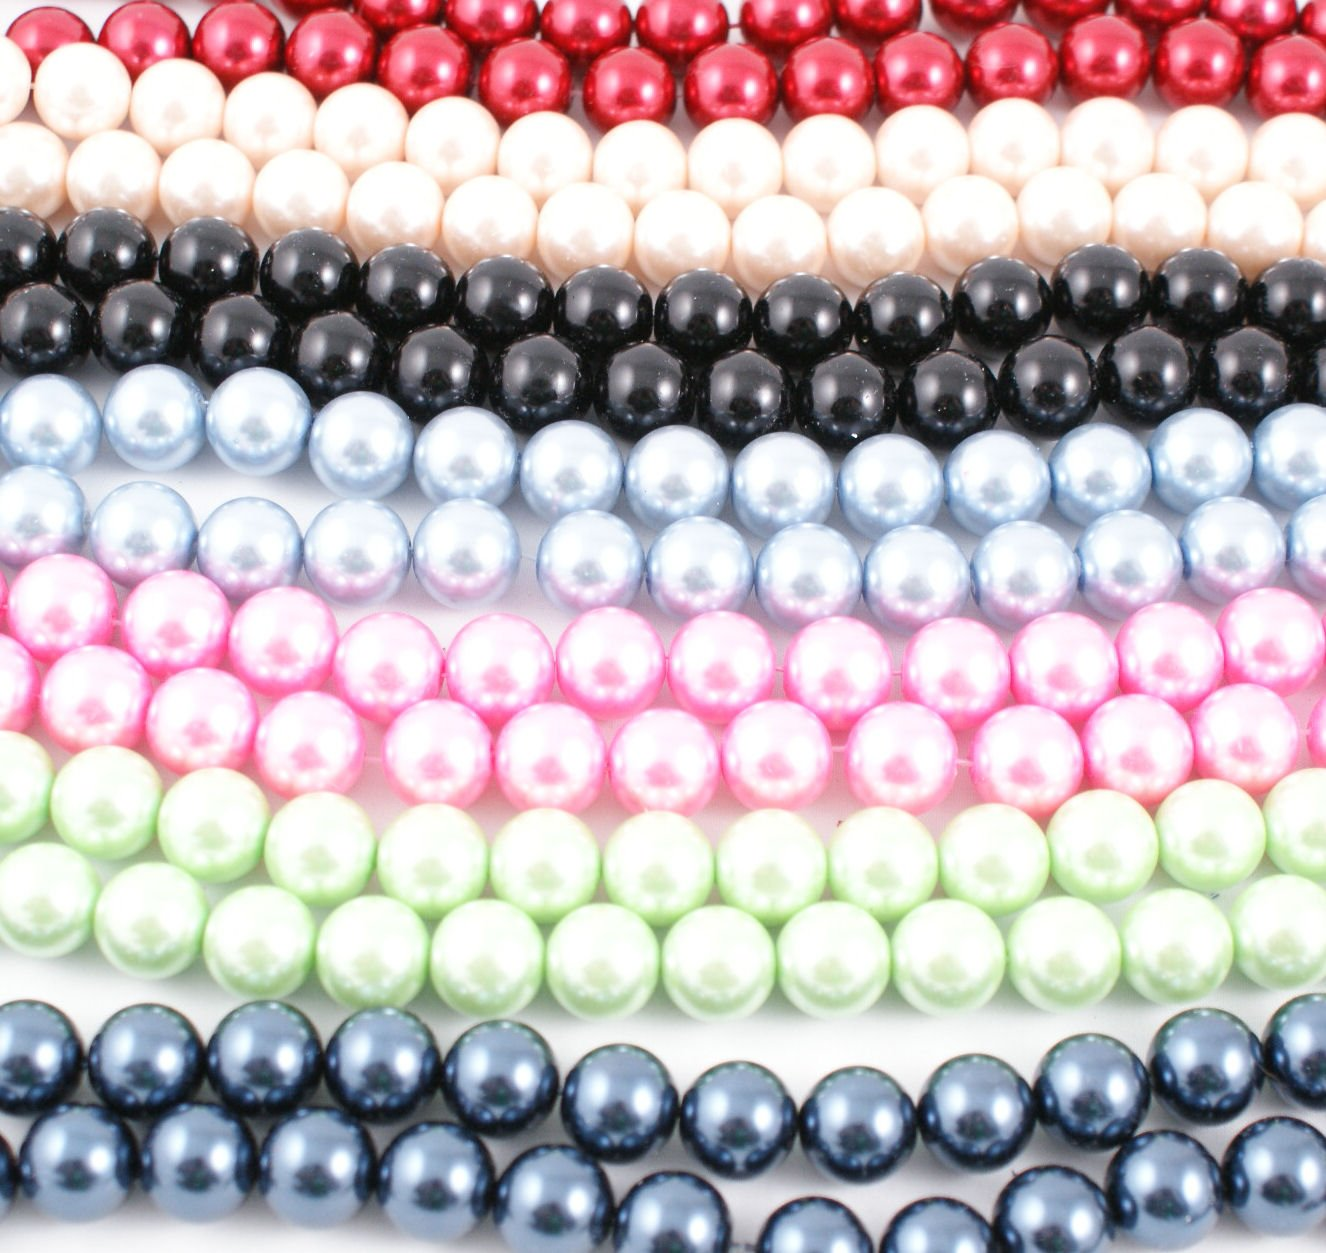 Glass Pearl Pearl Pearl Round Beads 20mm - Colour Choice (5-82) B004WKJFZ0 | Auktion